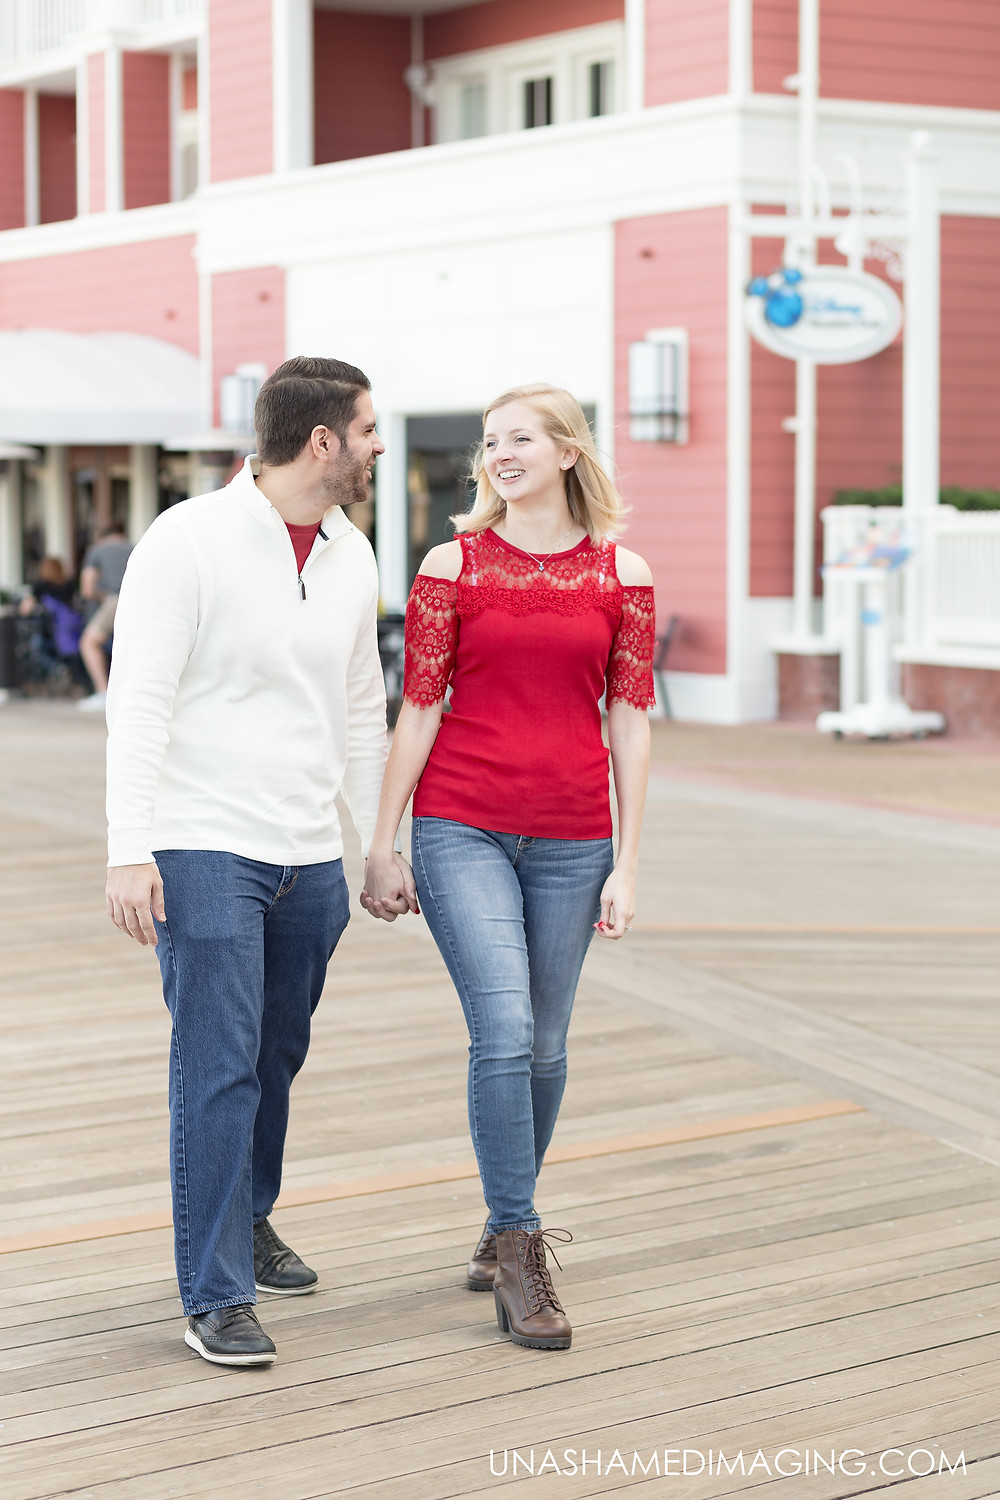 Disney Boardwalk Engagement Session: Megan & Ryan. Girl in red shirt and jeans holding hands.